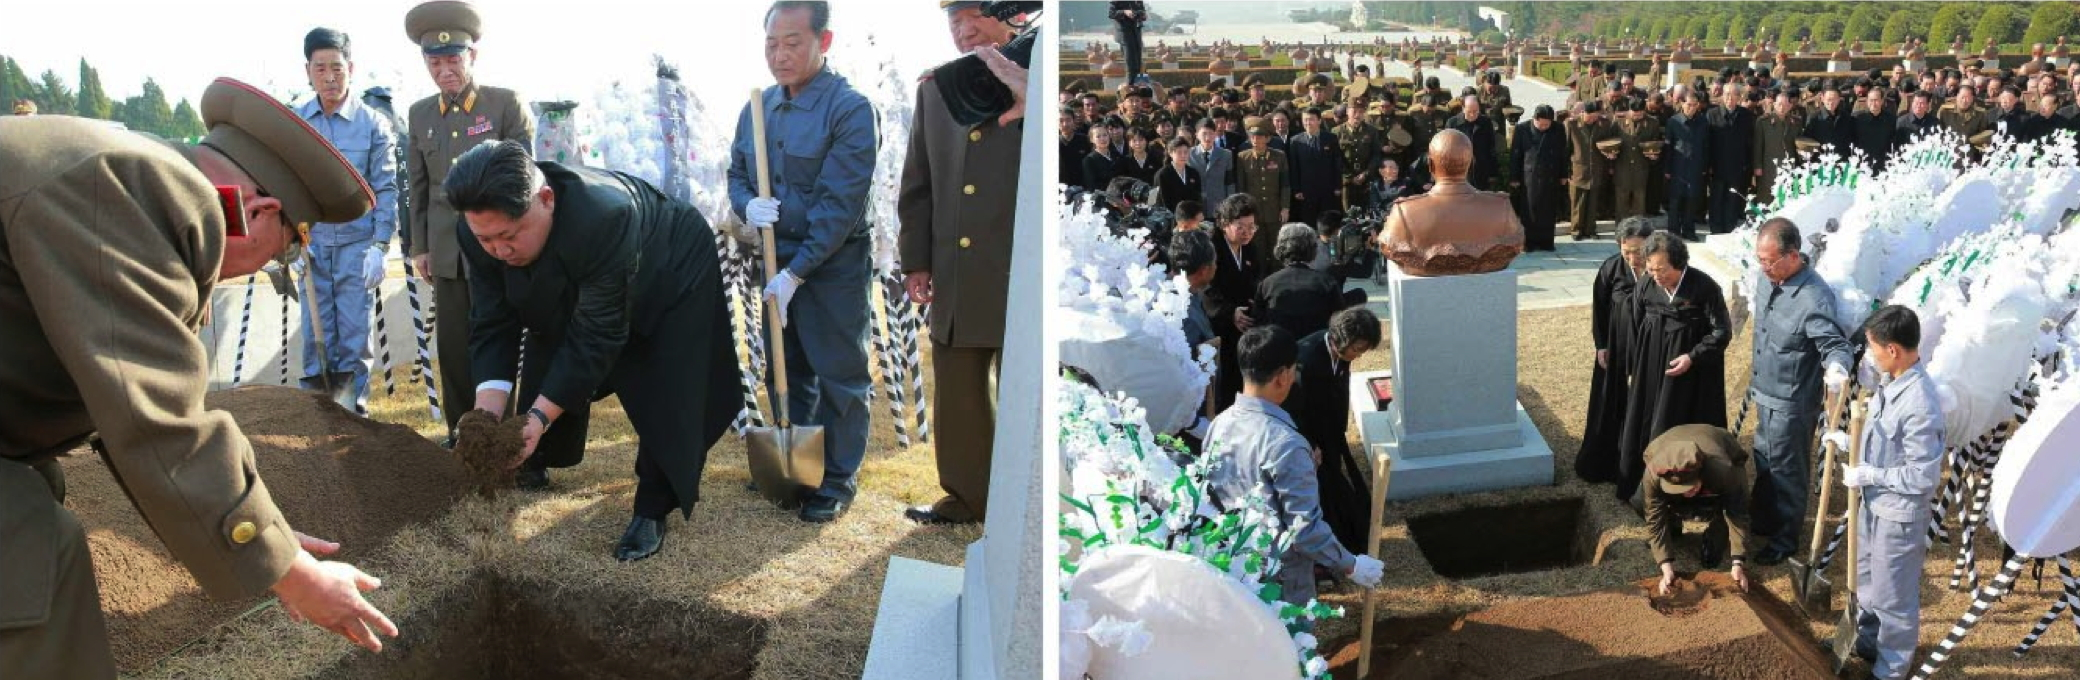 Kim Jong Un, members of Ri Ul Sol's family and members of the state funeral committee cover Ri's casket in dirt during an interment ceremony at Revolutionary Martyrs' Cemetery in Pyongyang on November 11, 2015 (Photos: Rodong Sinmun).